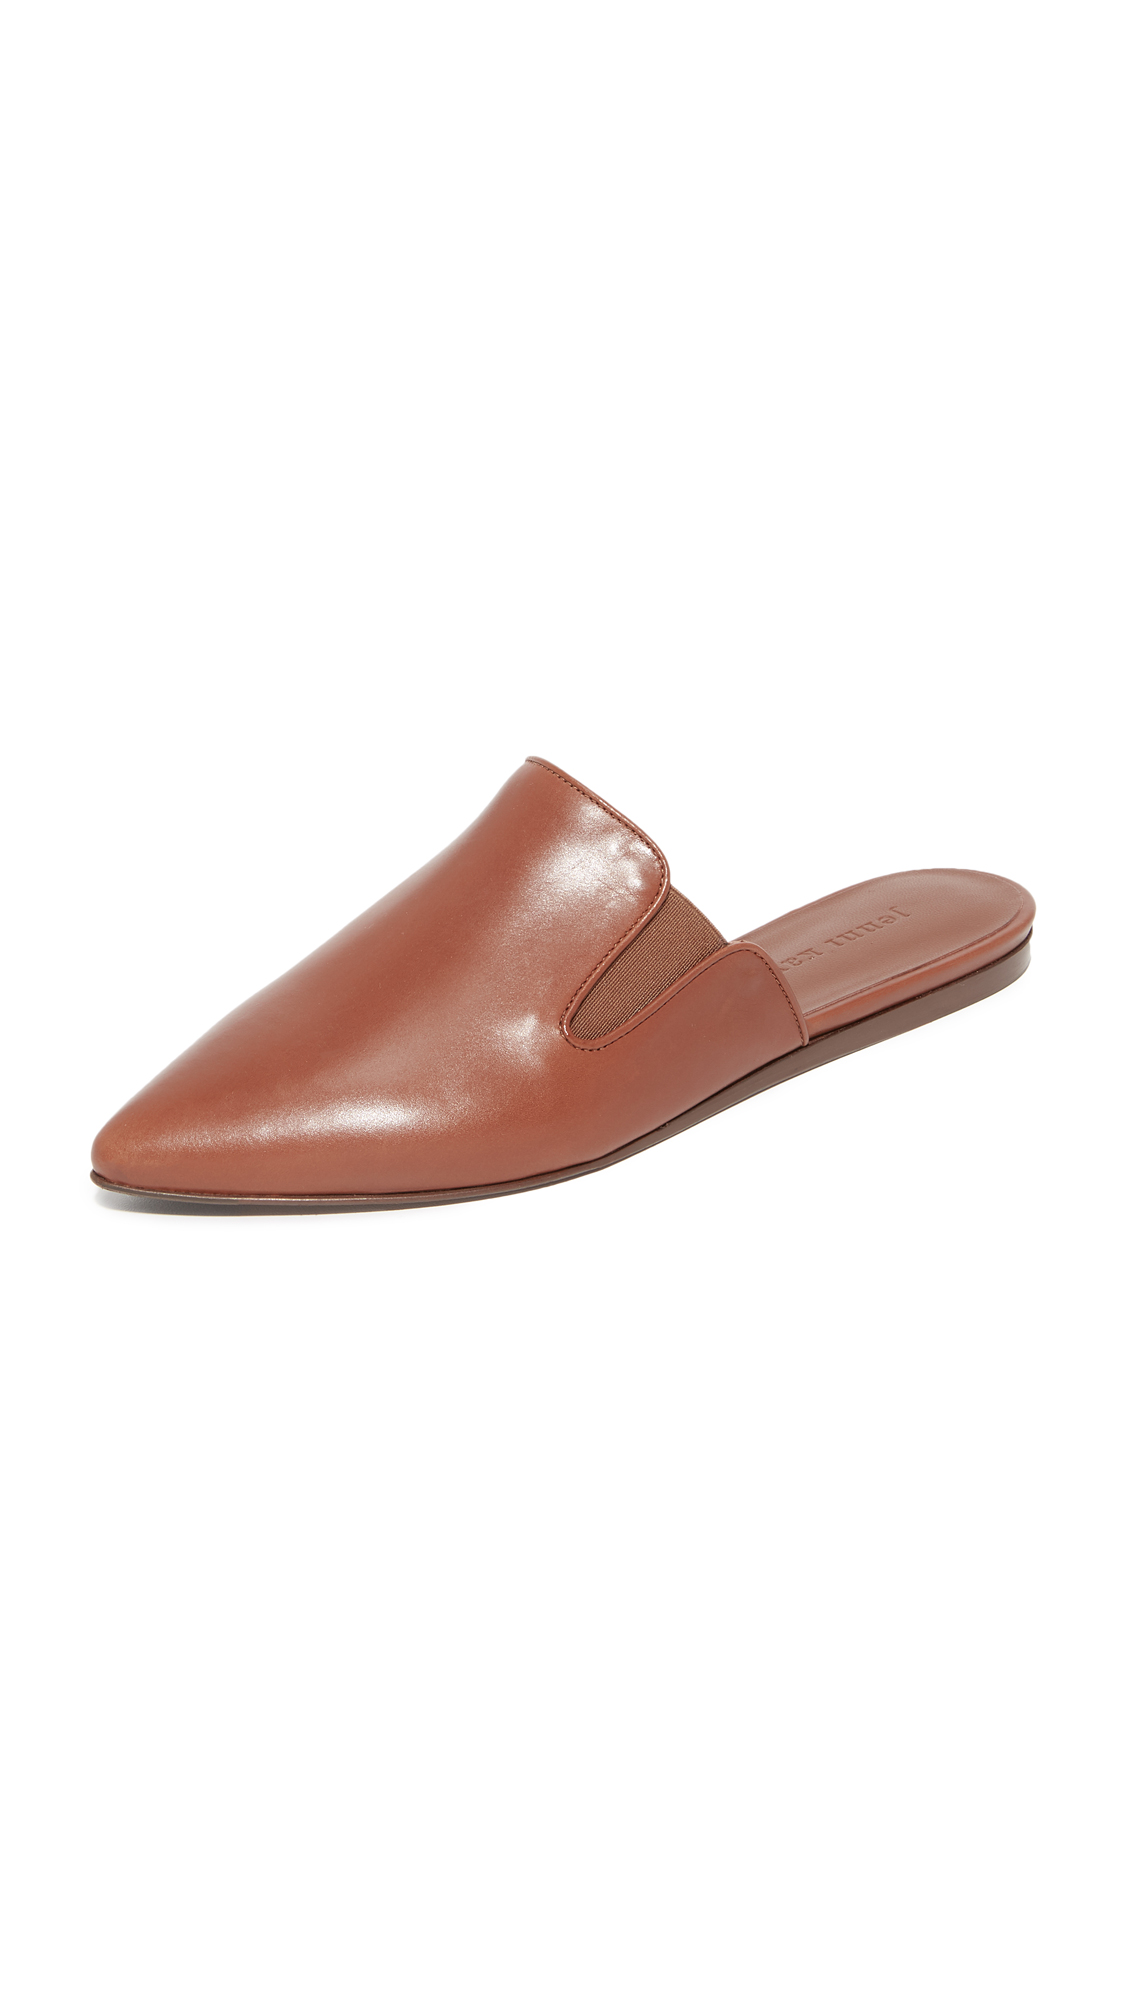 Jenni Kayne Leather Mules - Saddle